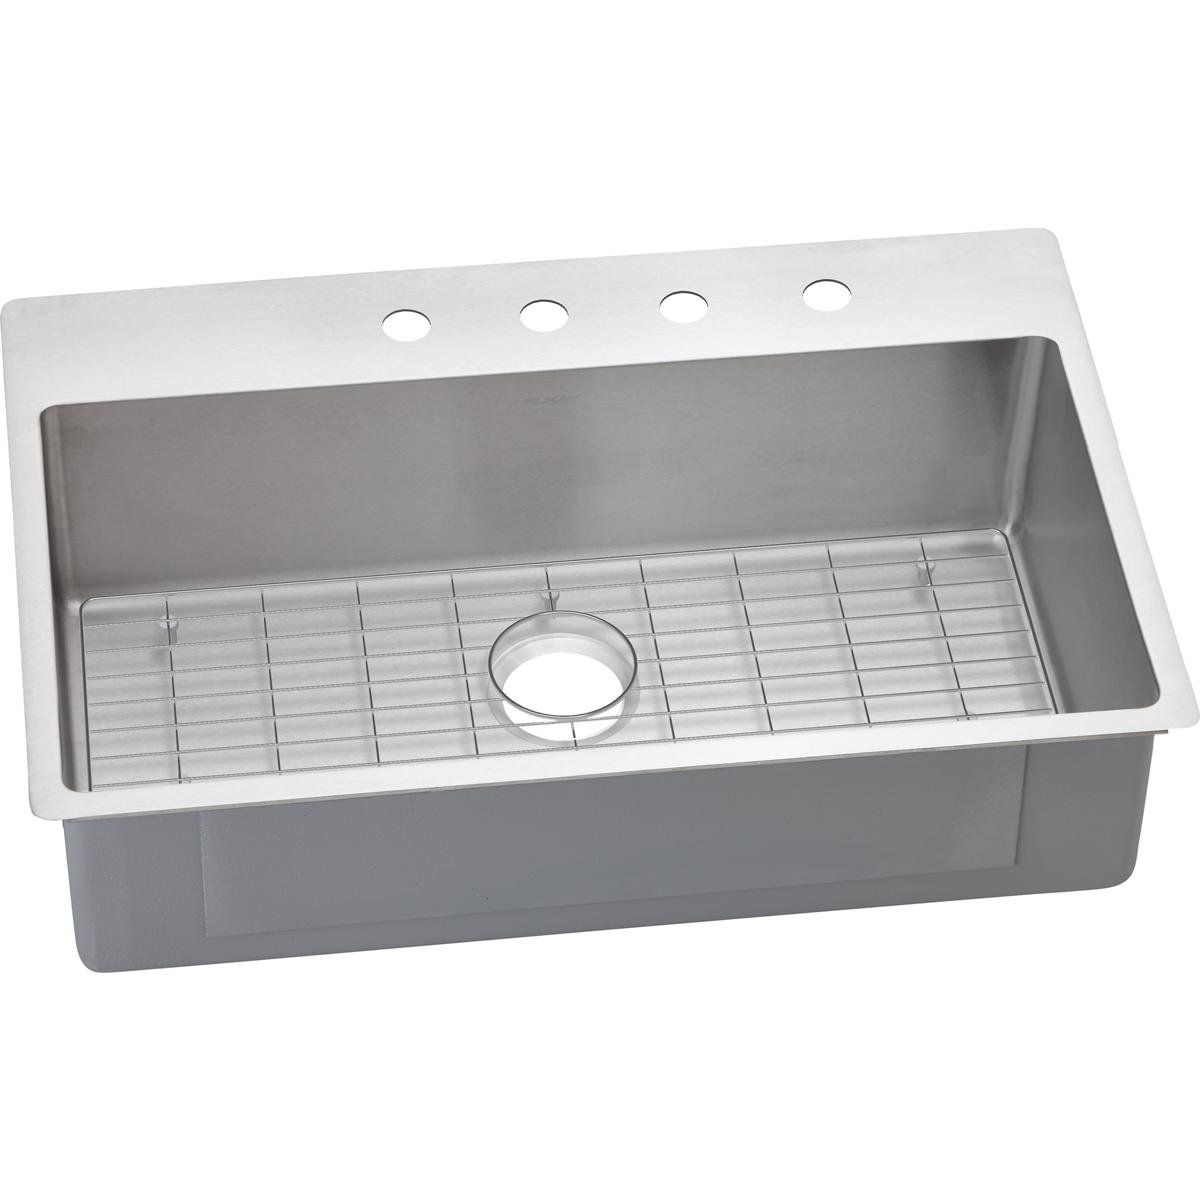 Elkay ECTSRS33229BG4 Crosstown Single Bowl Dual Mount Kitchen Sink ...